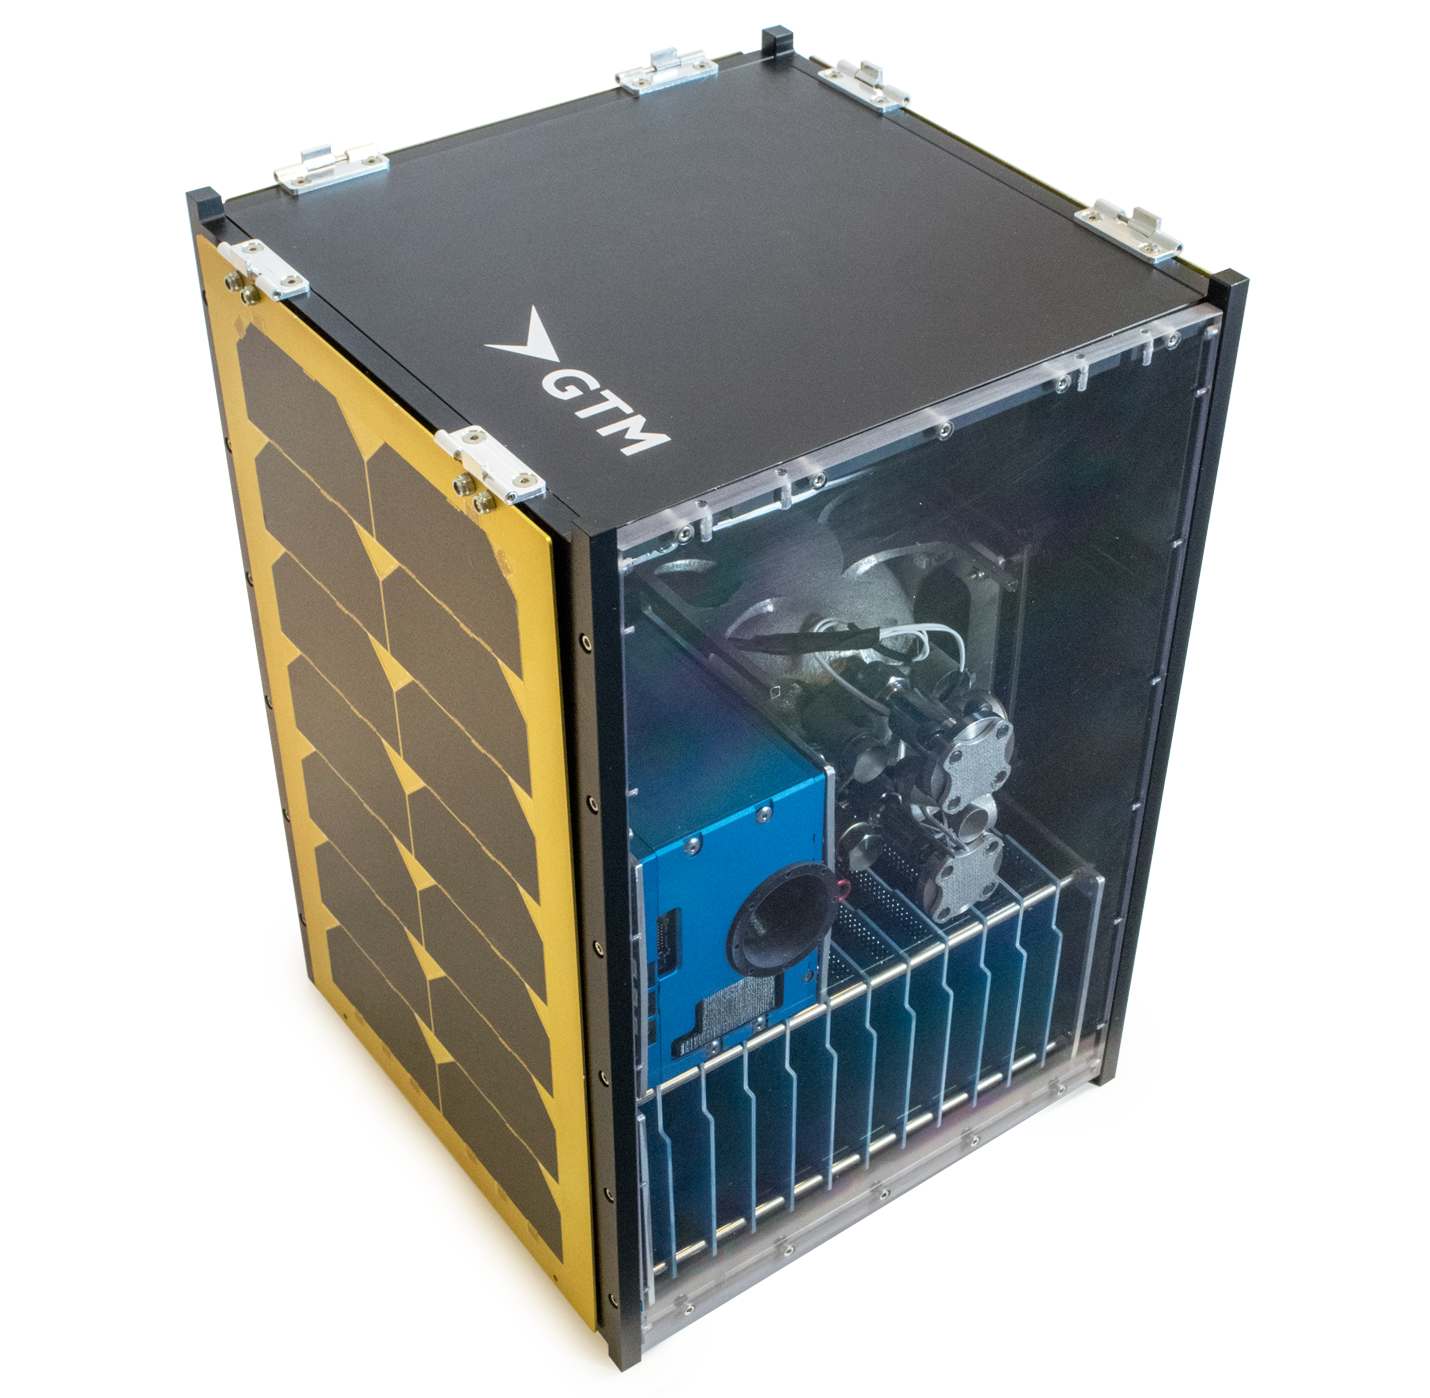 Nextgen Cubesat Gtm Advanced Structures